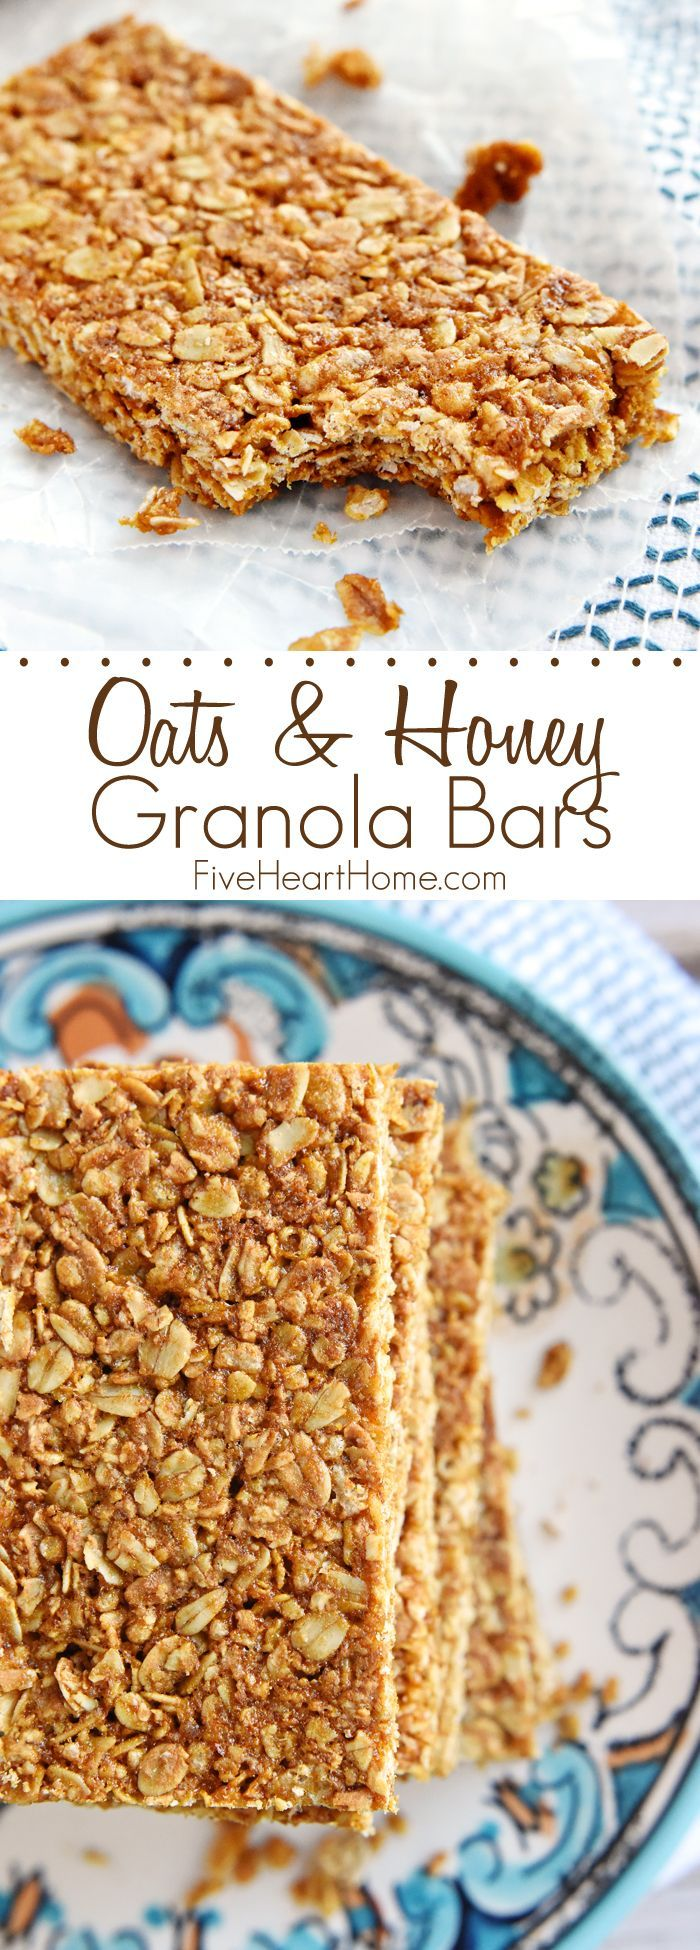 Oats & Honey Granola Bars FoodBlogs.com